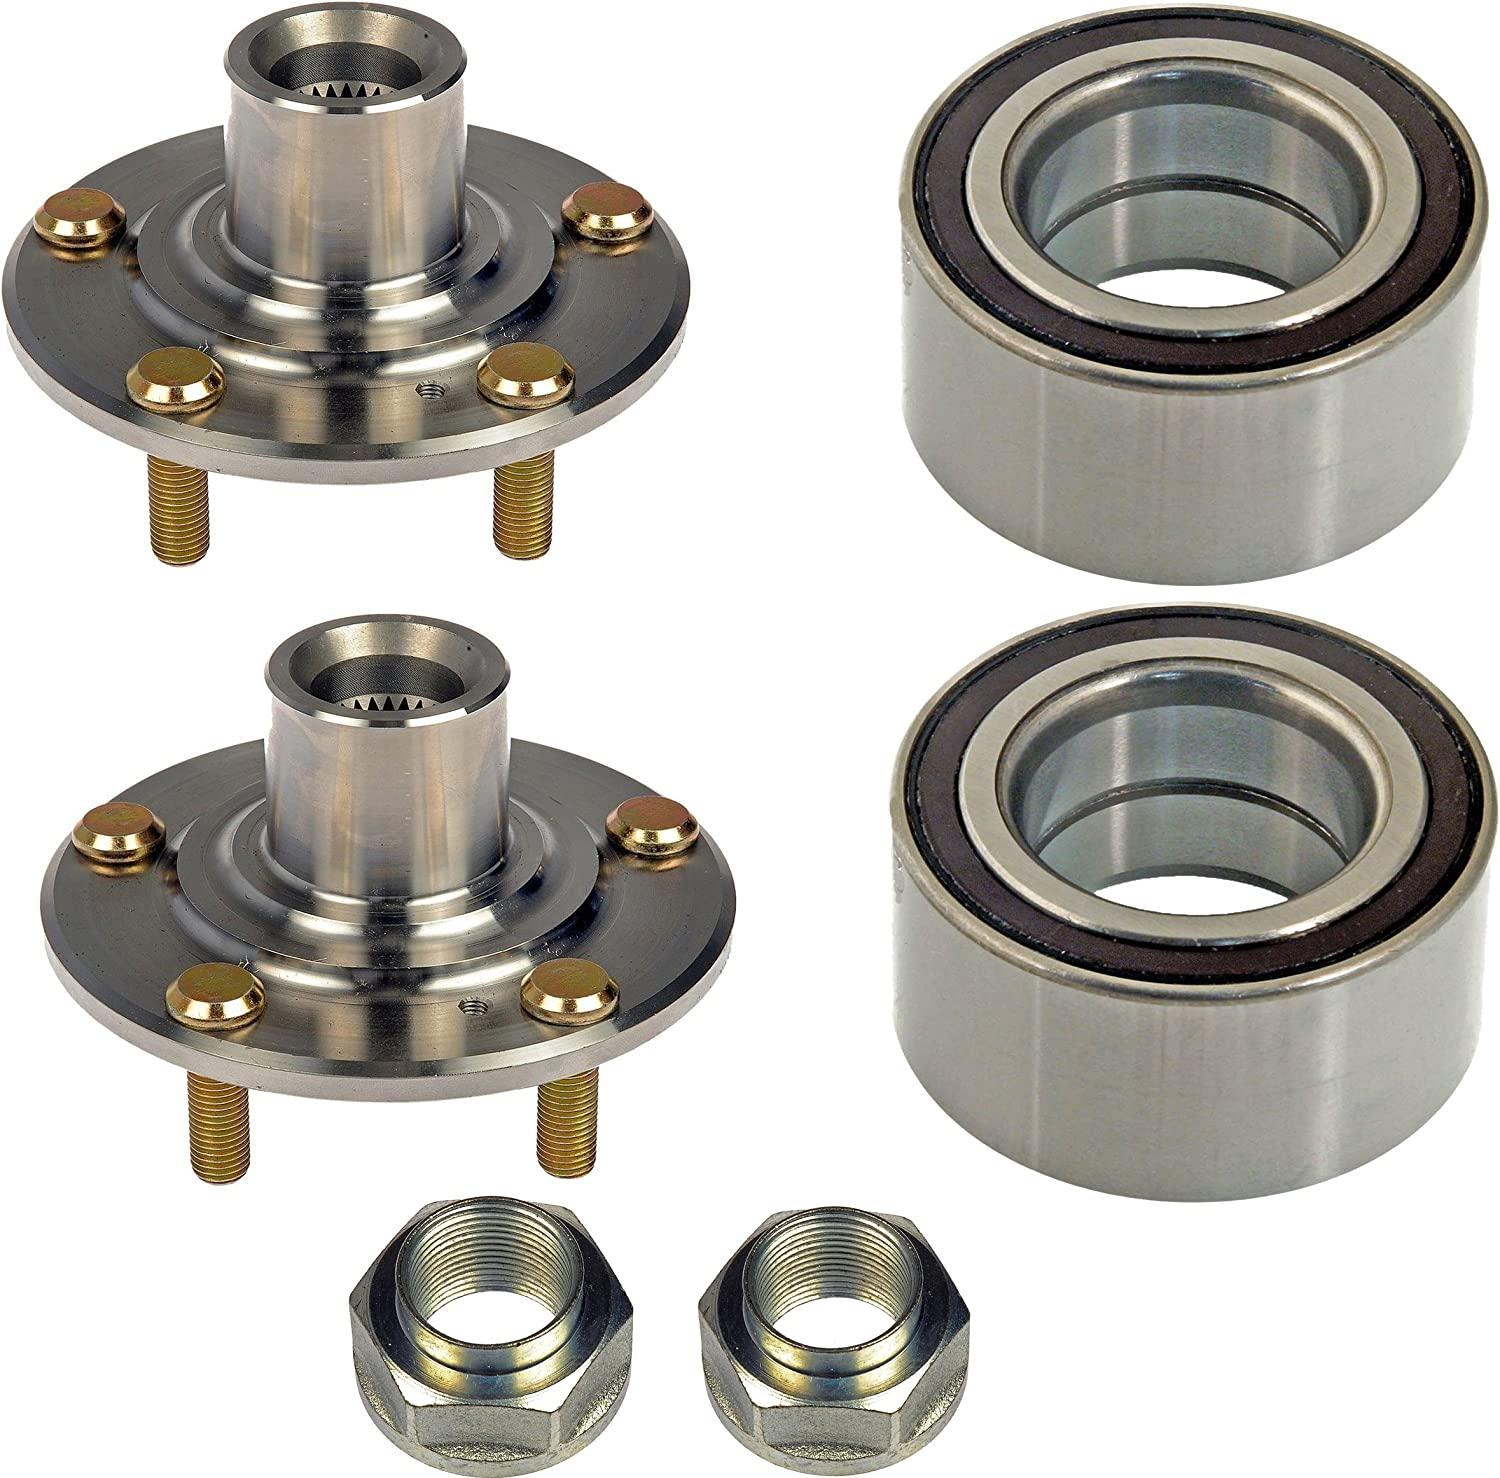 DTA DWH510089510089 x2 2 Front Wheel Hub Wheel Bearing Kits Left and Right Fits 2006-2011 Honda Civic DX EX GX LX; Excludes Si